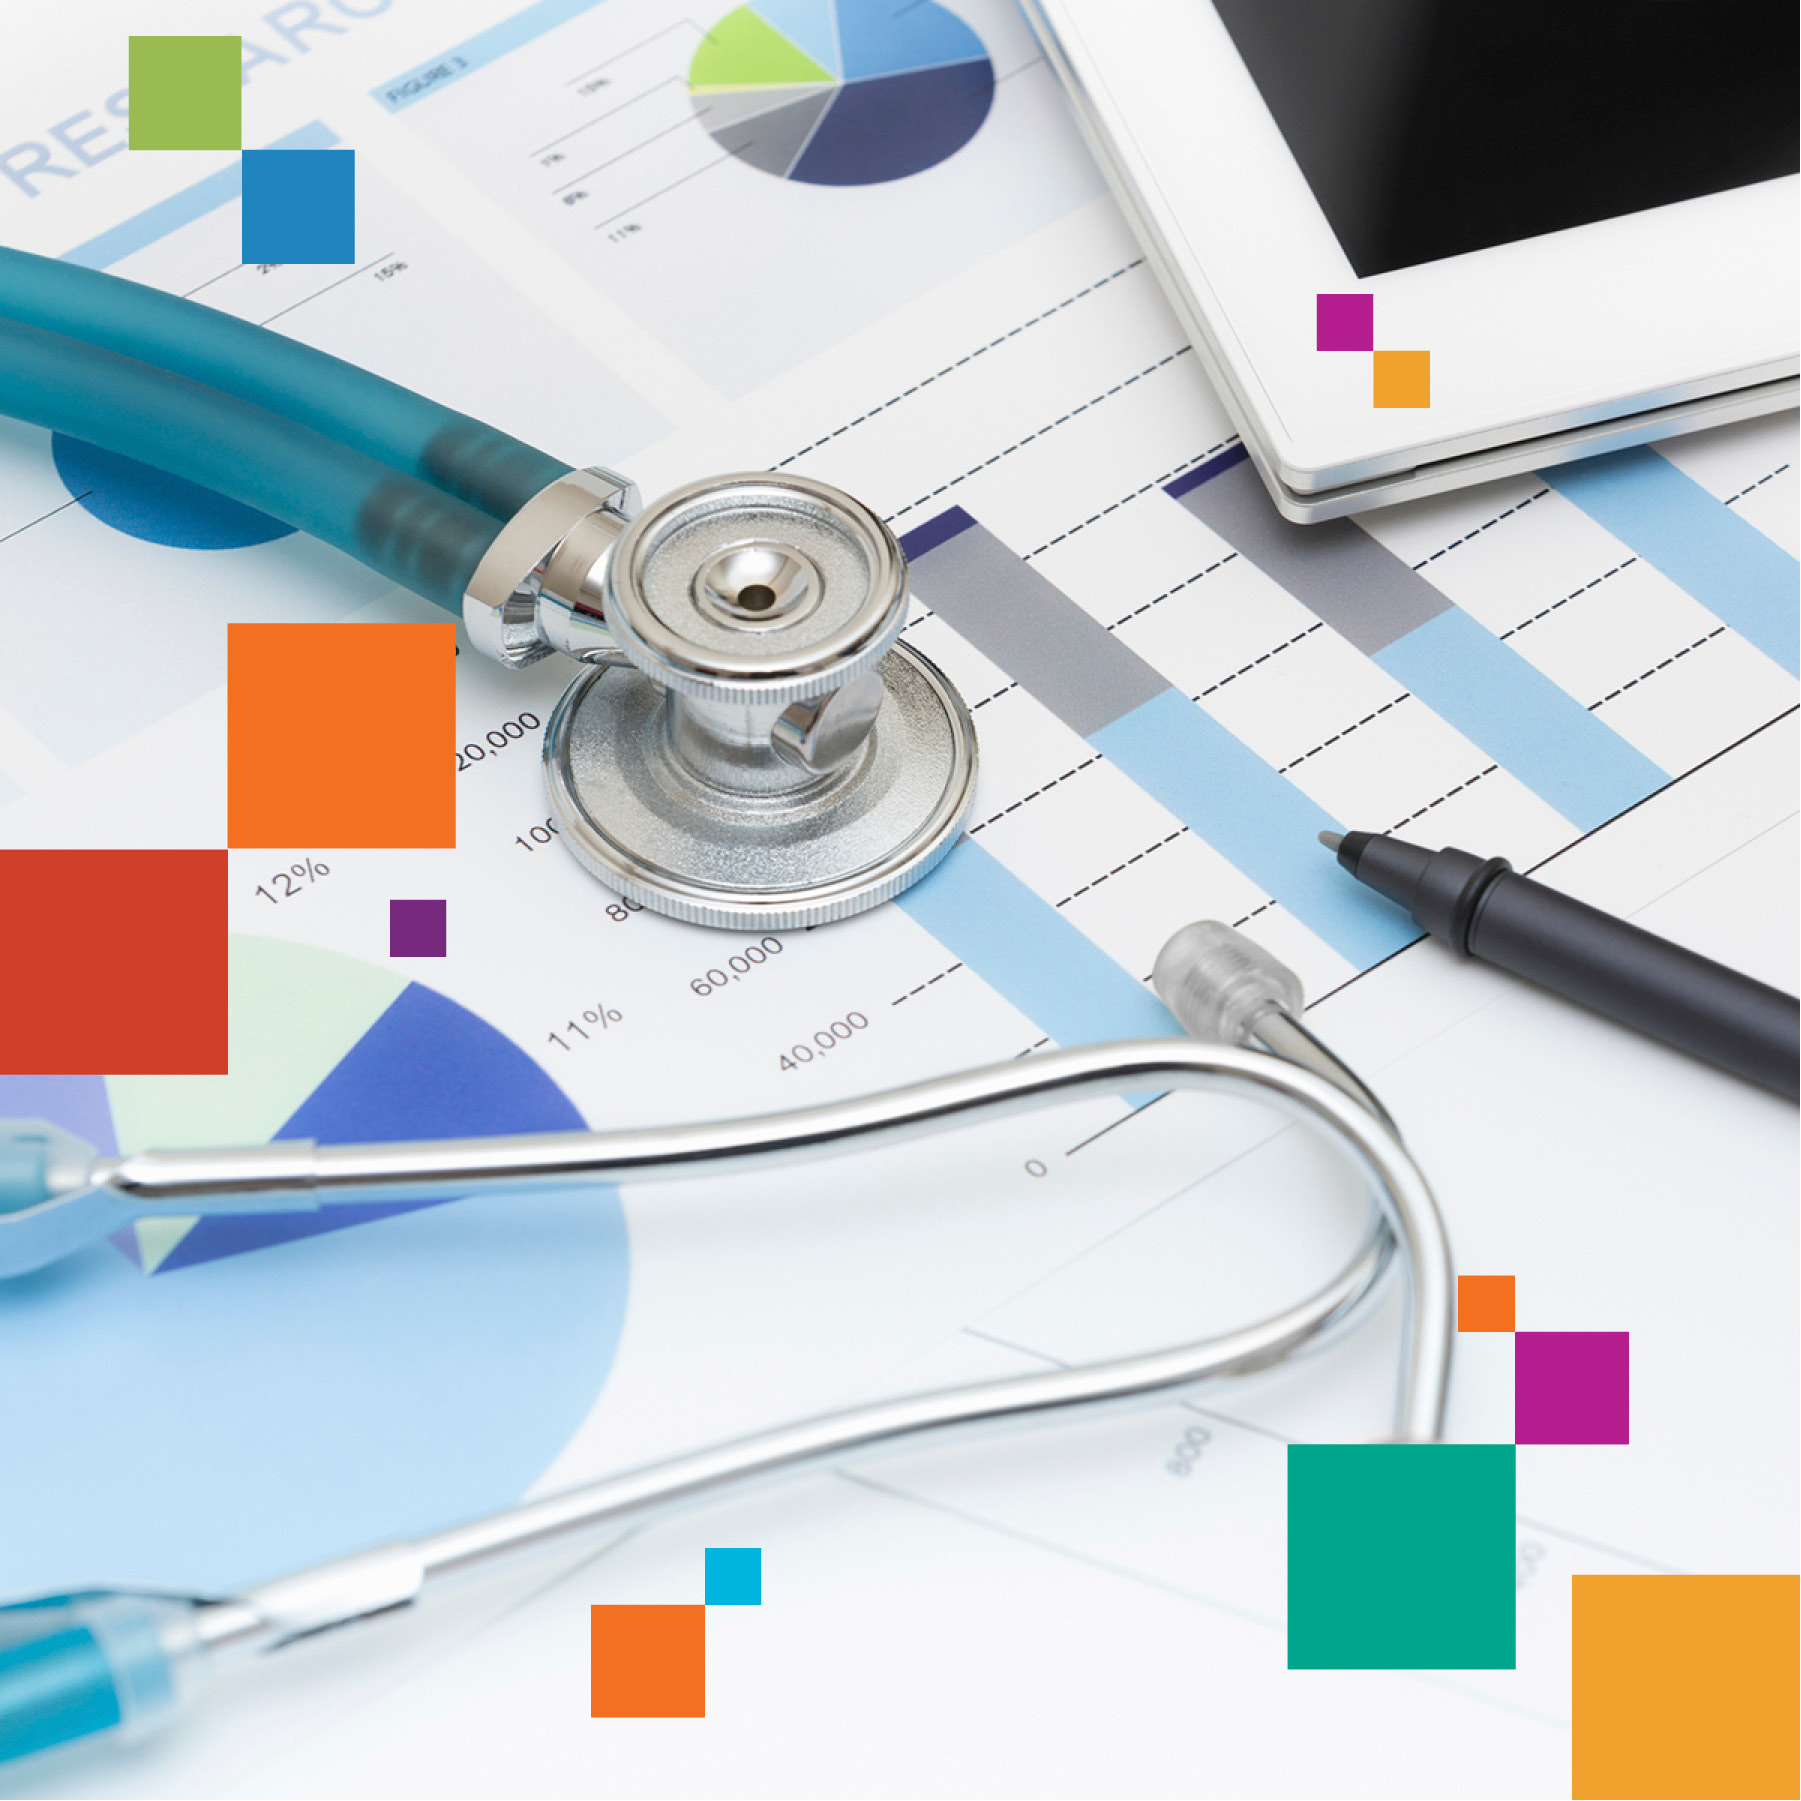 medical papers and stethoscope with color blocks